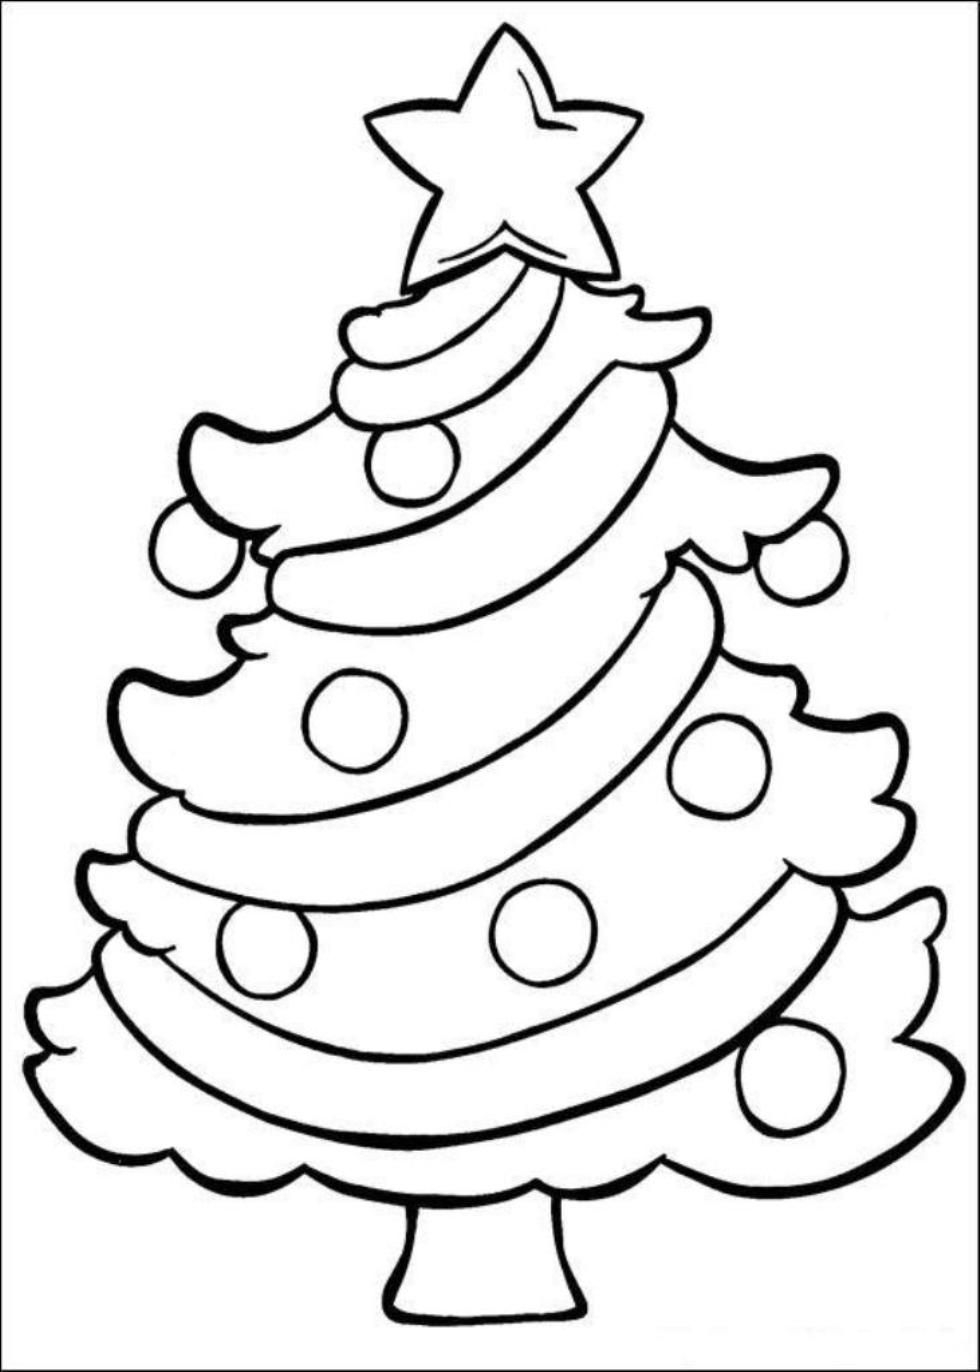 free christian christmas coloring pages printable christian christmas coloring pages fun pinterest free christmas christian printable coloring pages